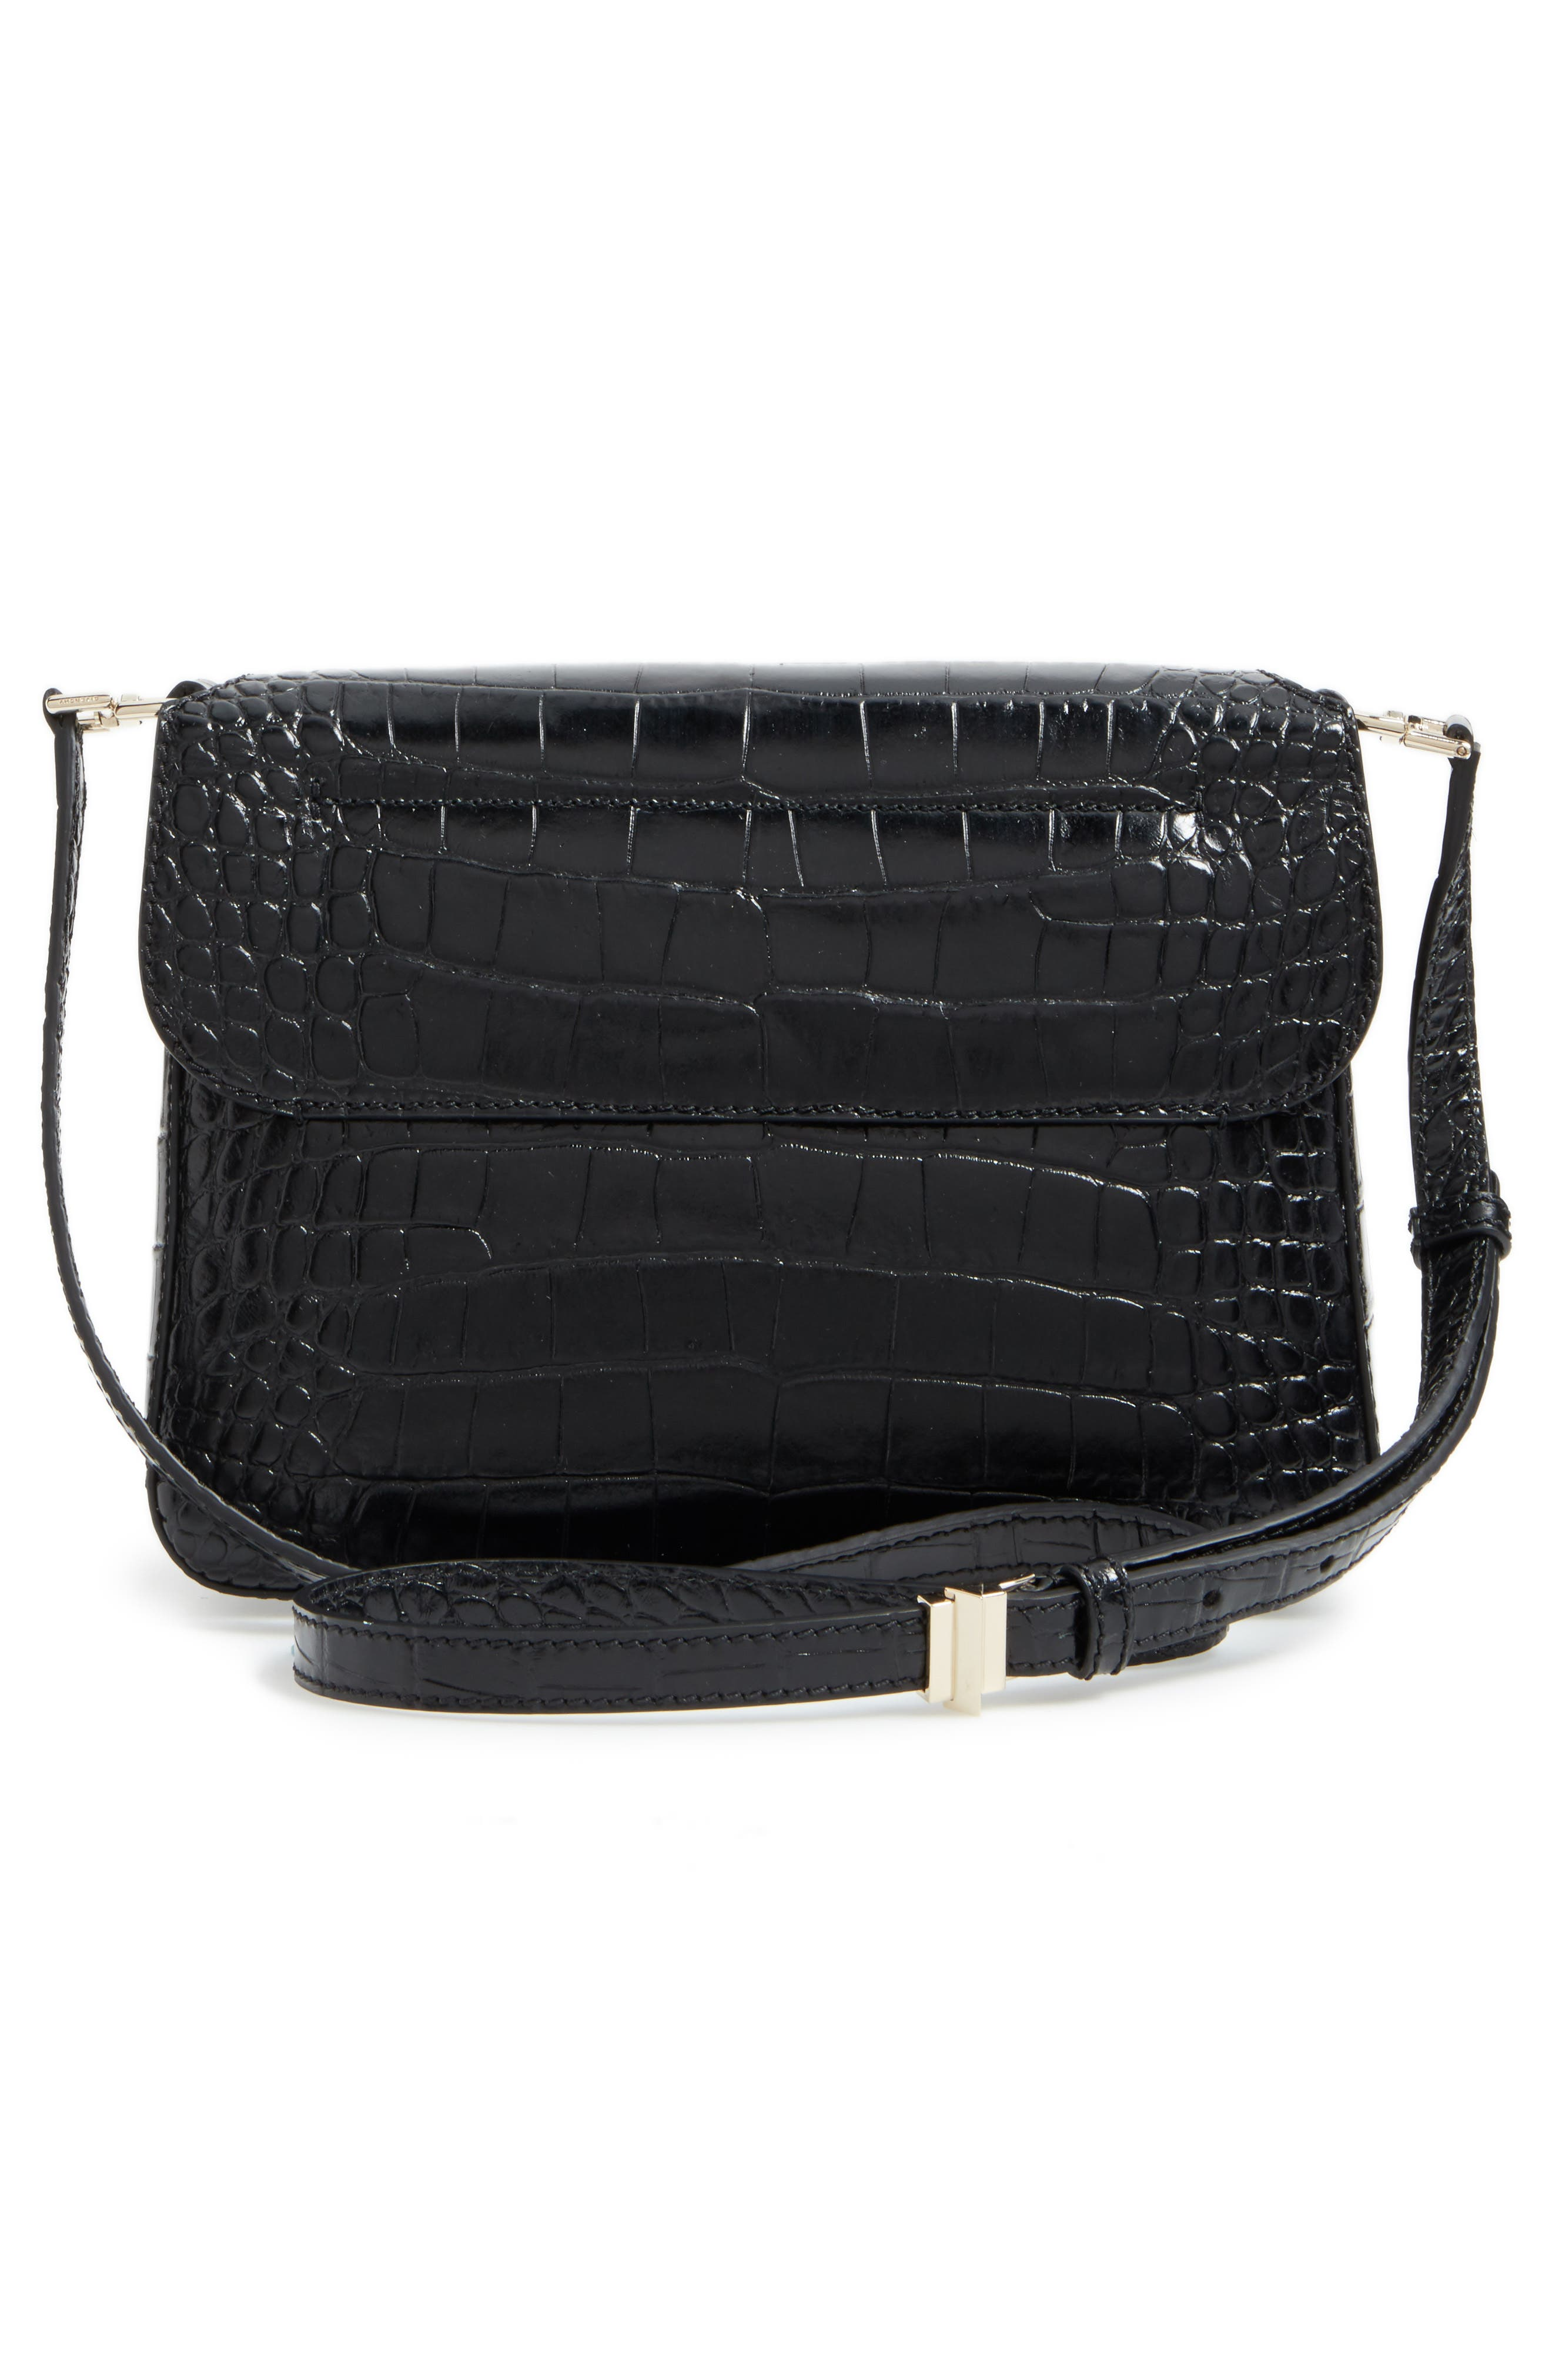 Alternate Image 2  - Givenchy Small Nobile Croc Embossed Leather Crossbody Bag